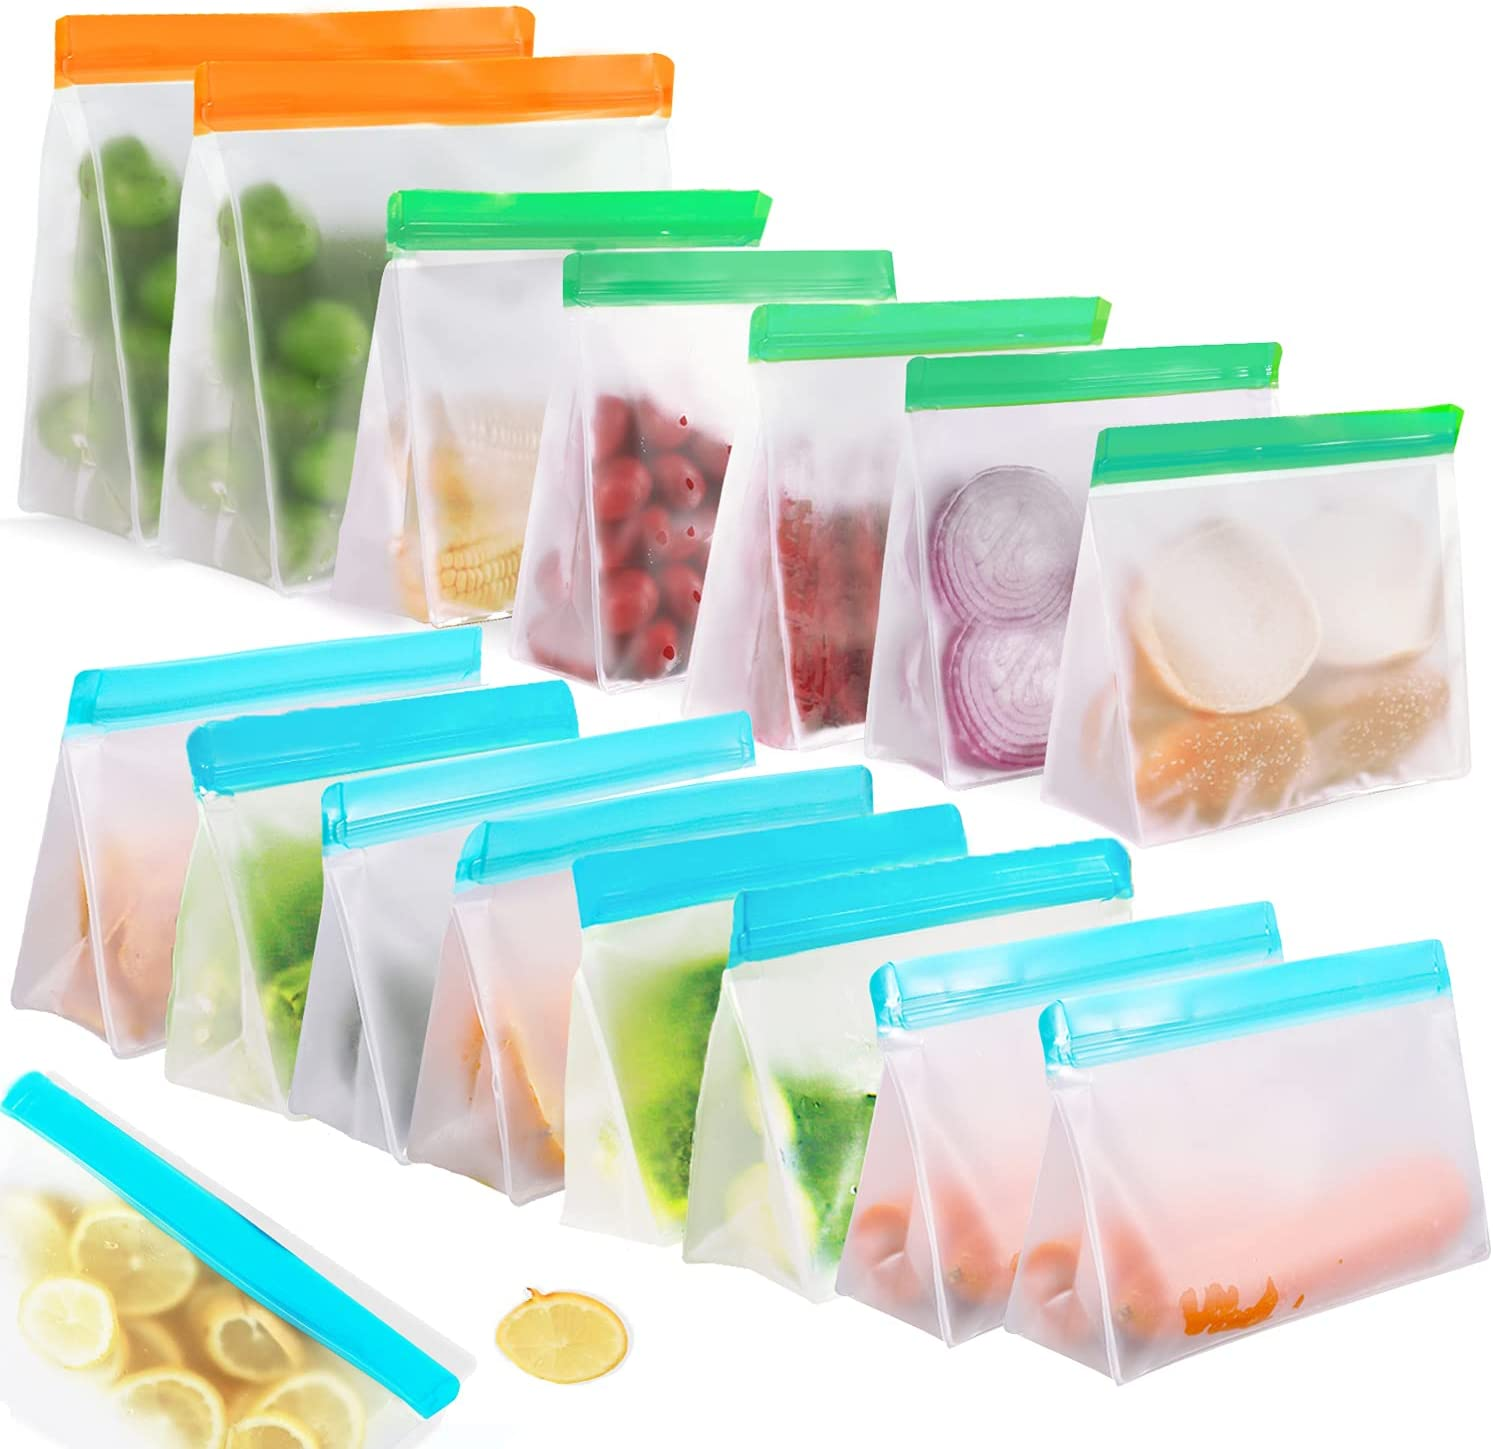 15 Pack Reusable Food Storage Bags Stand Up, Haliluya FDA Grade Leakproof Reusable Freezer Bags - 2 Gallon Bags + 5 Sandwich Bags + 8 Snack Bags - Reusable Storage Bags for Meat Fruit Cereal Snacks